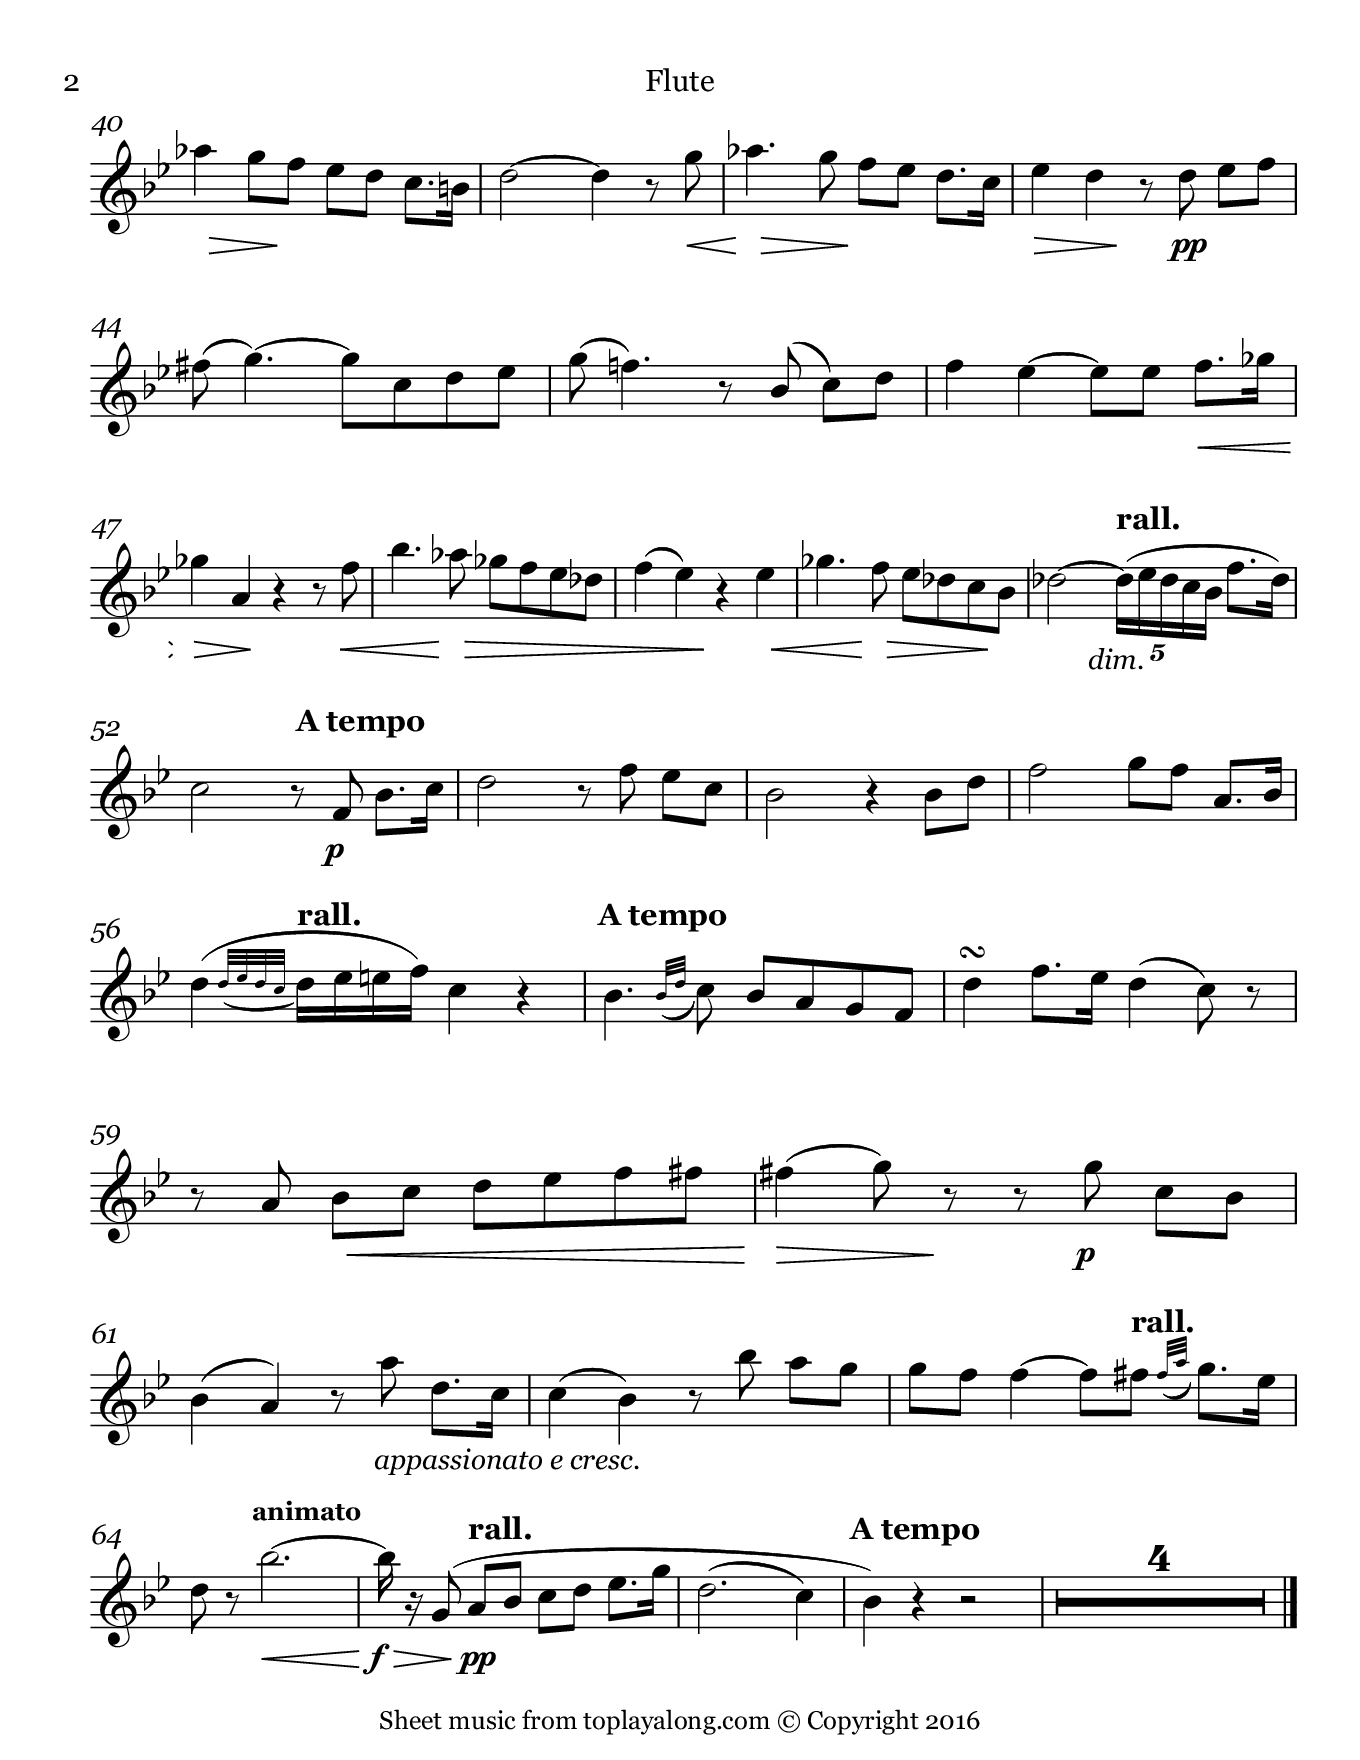 Vieille chanson by Bizet. Sheet music for Flute, page 2.